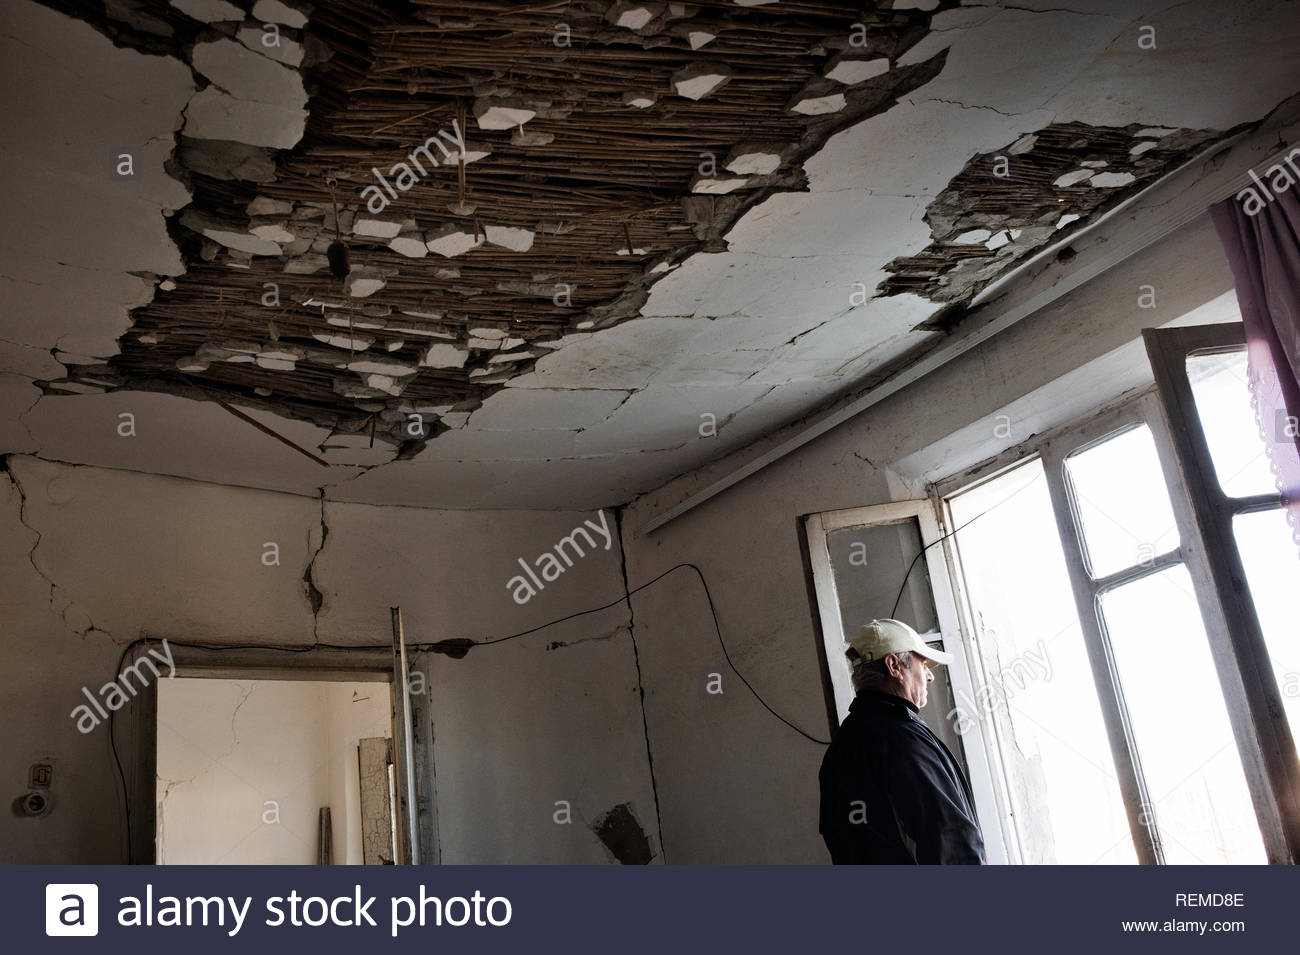 The interior of one of the damaged houses of the village of Patos-Marinza. The damages are caused by the practice of oil extraction known as 'fracking', which has caused many earthquakes in an area still inhabited by small farmers and ranchers. - Stock Image